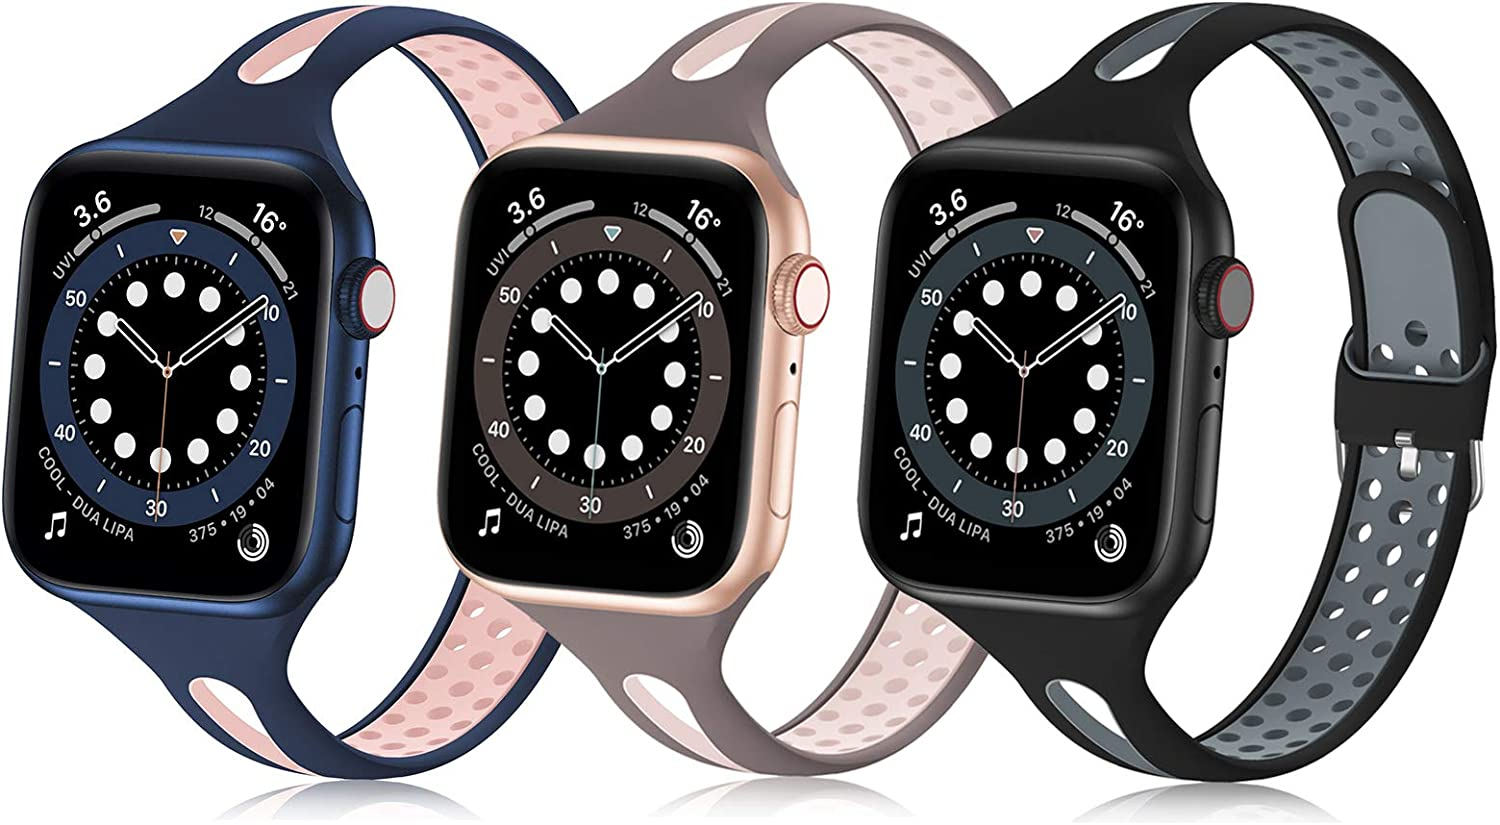 Bandiction Compatible with Apple Watch Bands 38mm 40mm 42mm 44mm, Silicone Sport Bands for iWatch Bands Women Men Thin Slim Narrow Breathable Replacement Strap for iWatch SE Series 6/5/4/3/2/1, 3 Pack